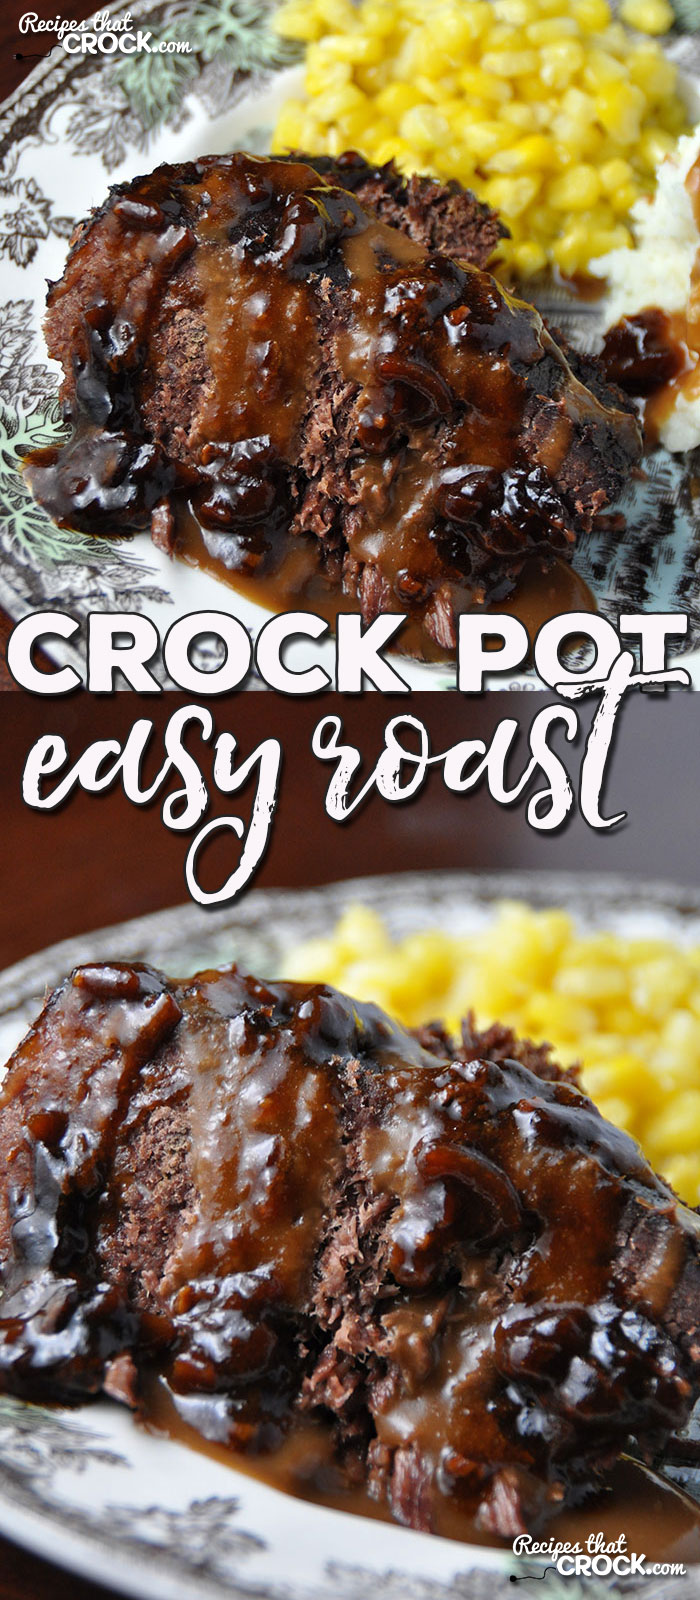 This Easy Crock Pot Roast is so simple to throw together and has an incredible flavor. Best yet, you probably have all the ingredients already in your cabinet!